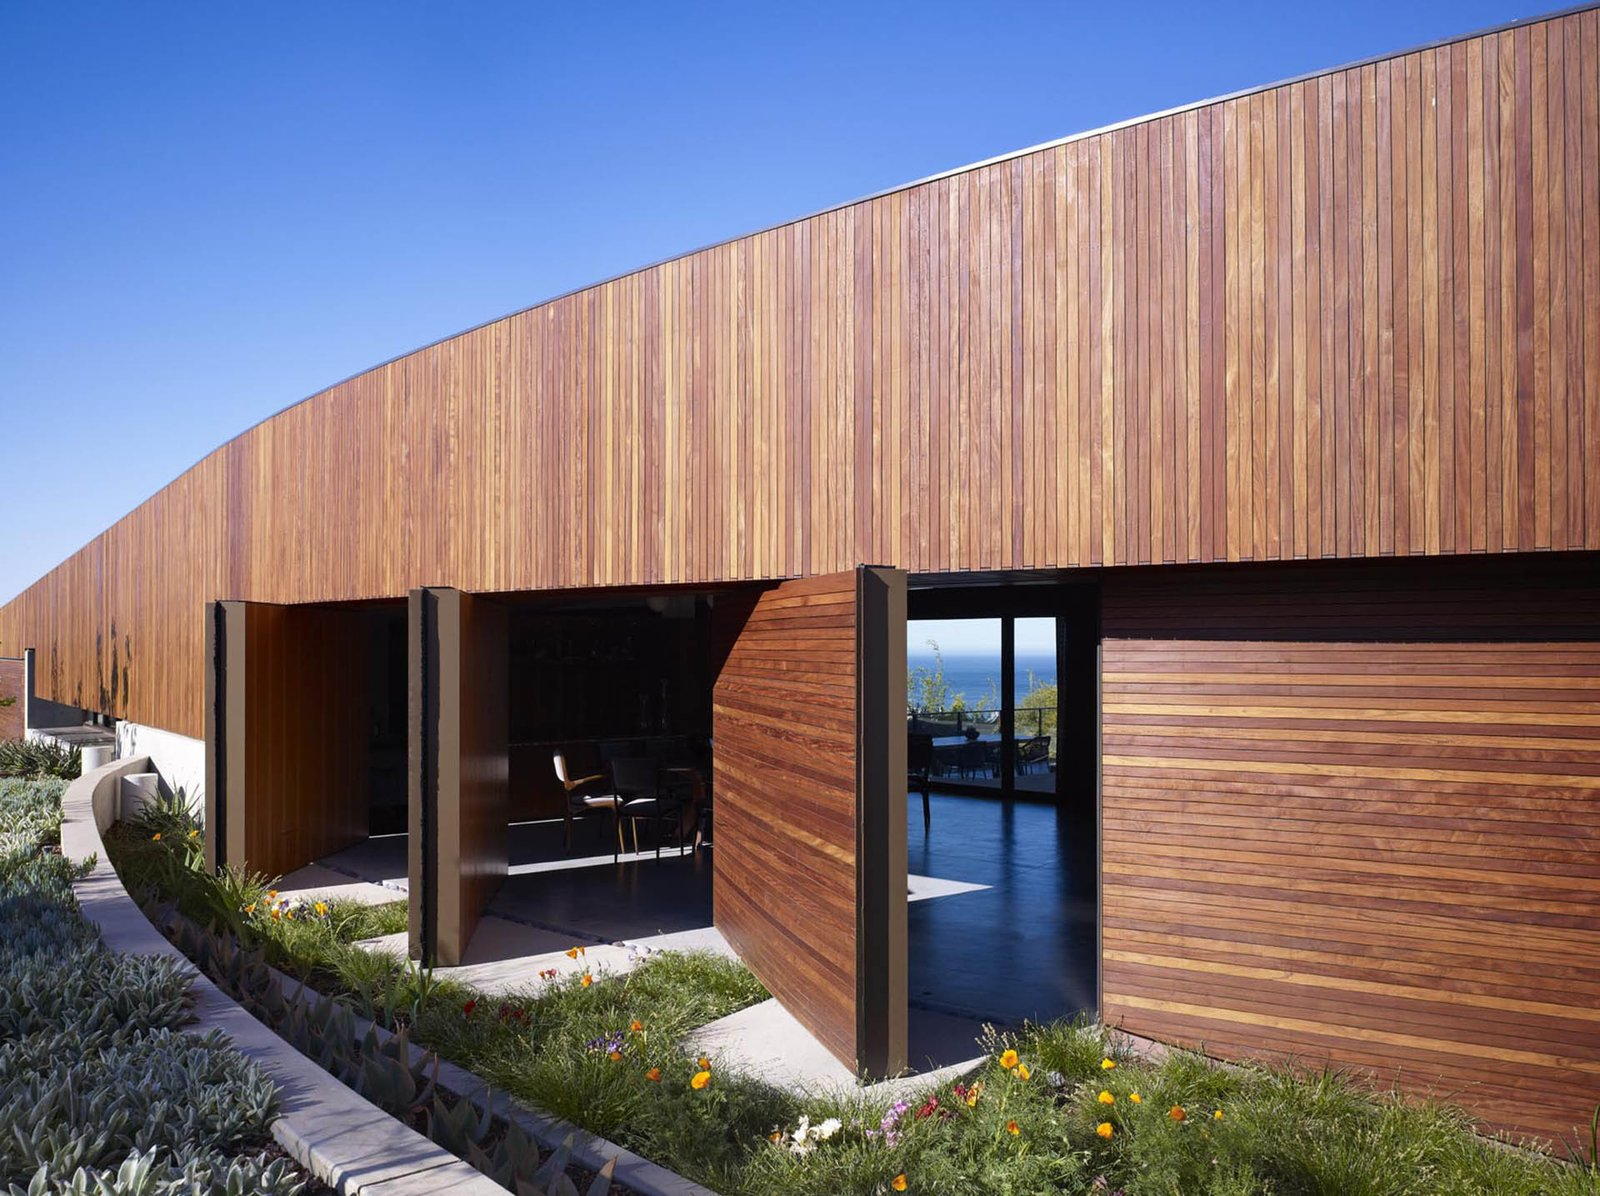 The front door and pivoting wall panels transform this façade when opened, presenting views of the interior, the courtyard and the ocean beyond.  Ziering Residence